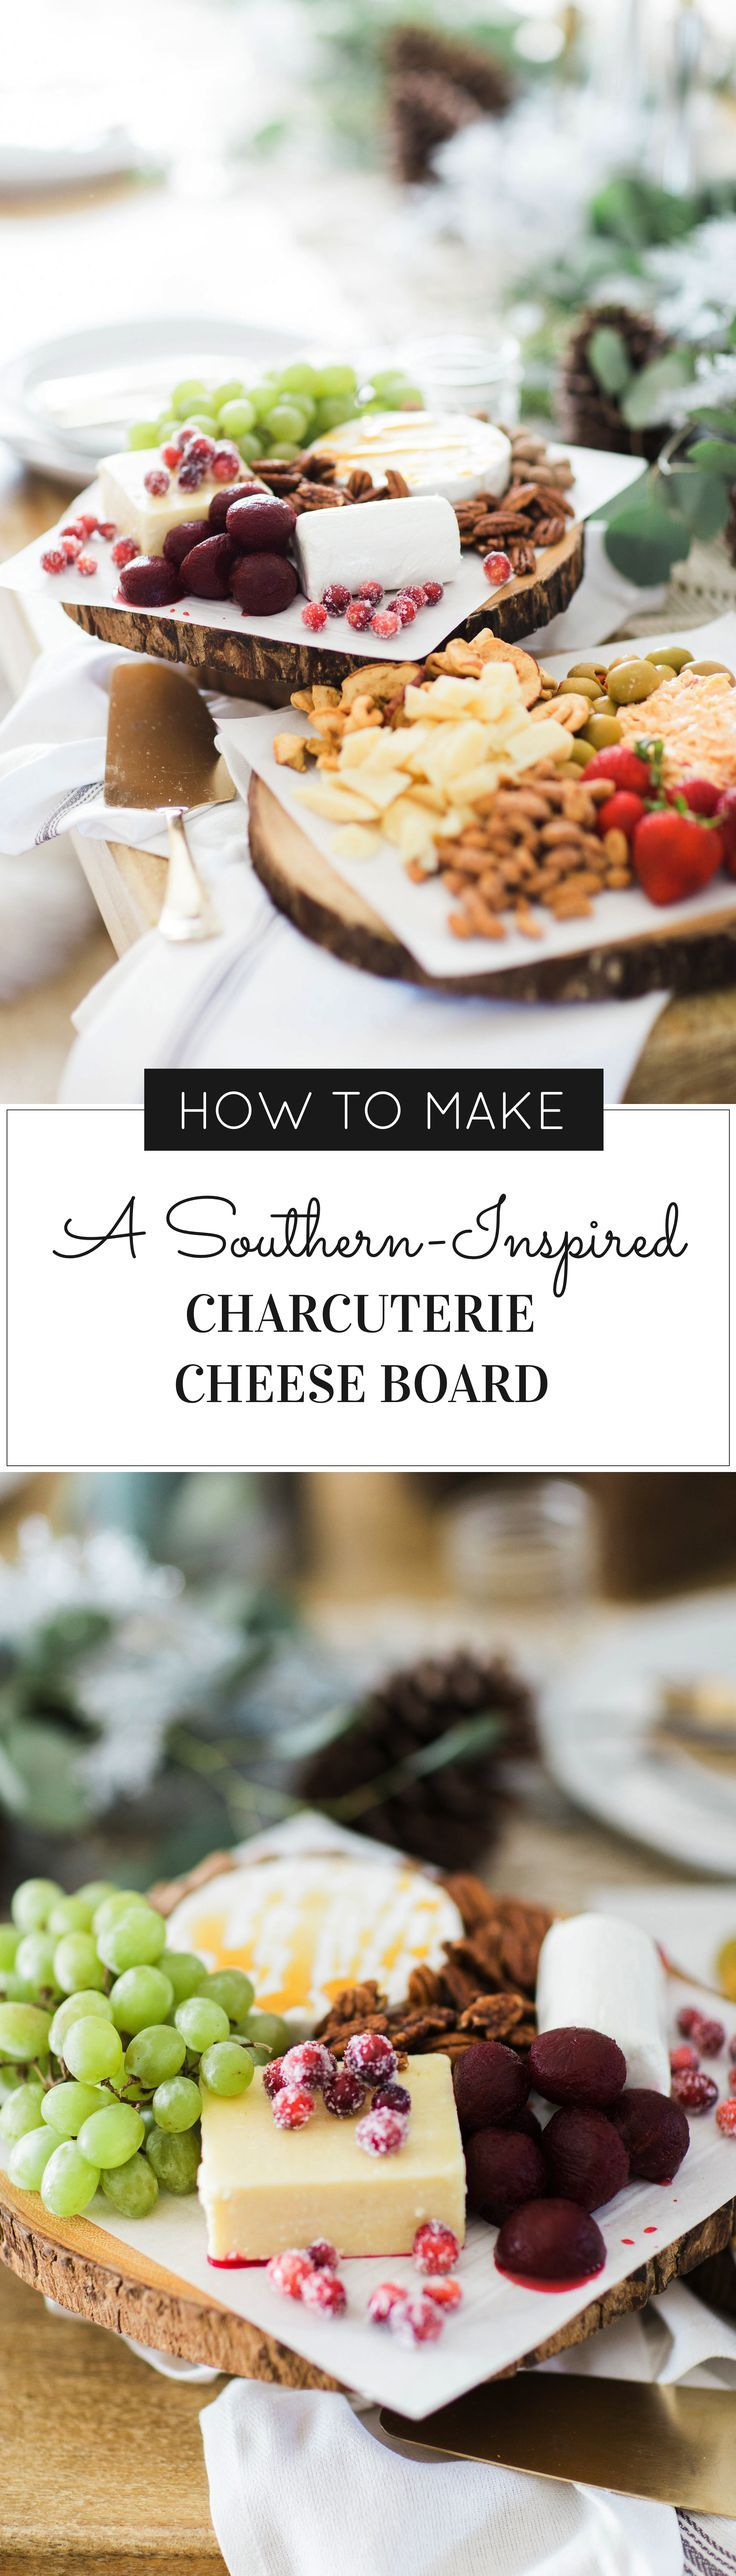 How to Make An EPIC Southern-Inspired Charcuterie Cheese Board (the easy way). Click through for the how-to. | DIY party ideas | entertaining tips and tricks | party food and recipes | glitterinc.com | @glitterinc